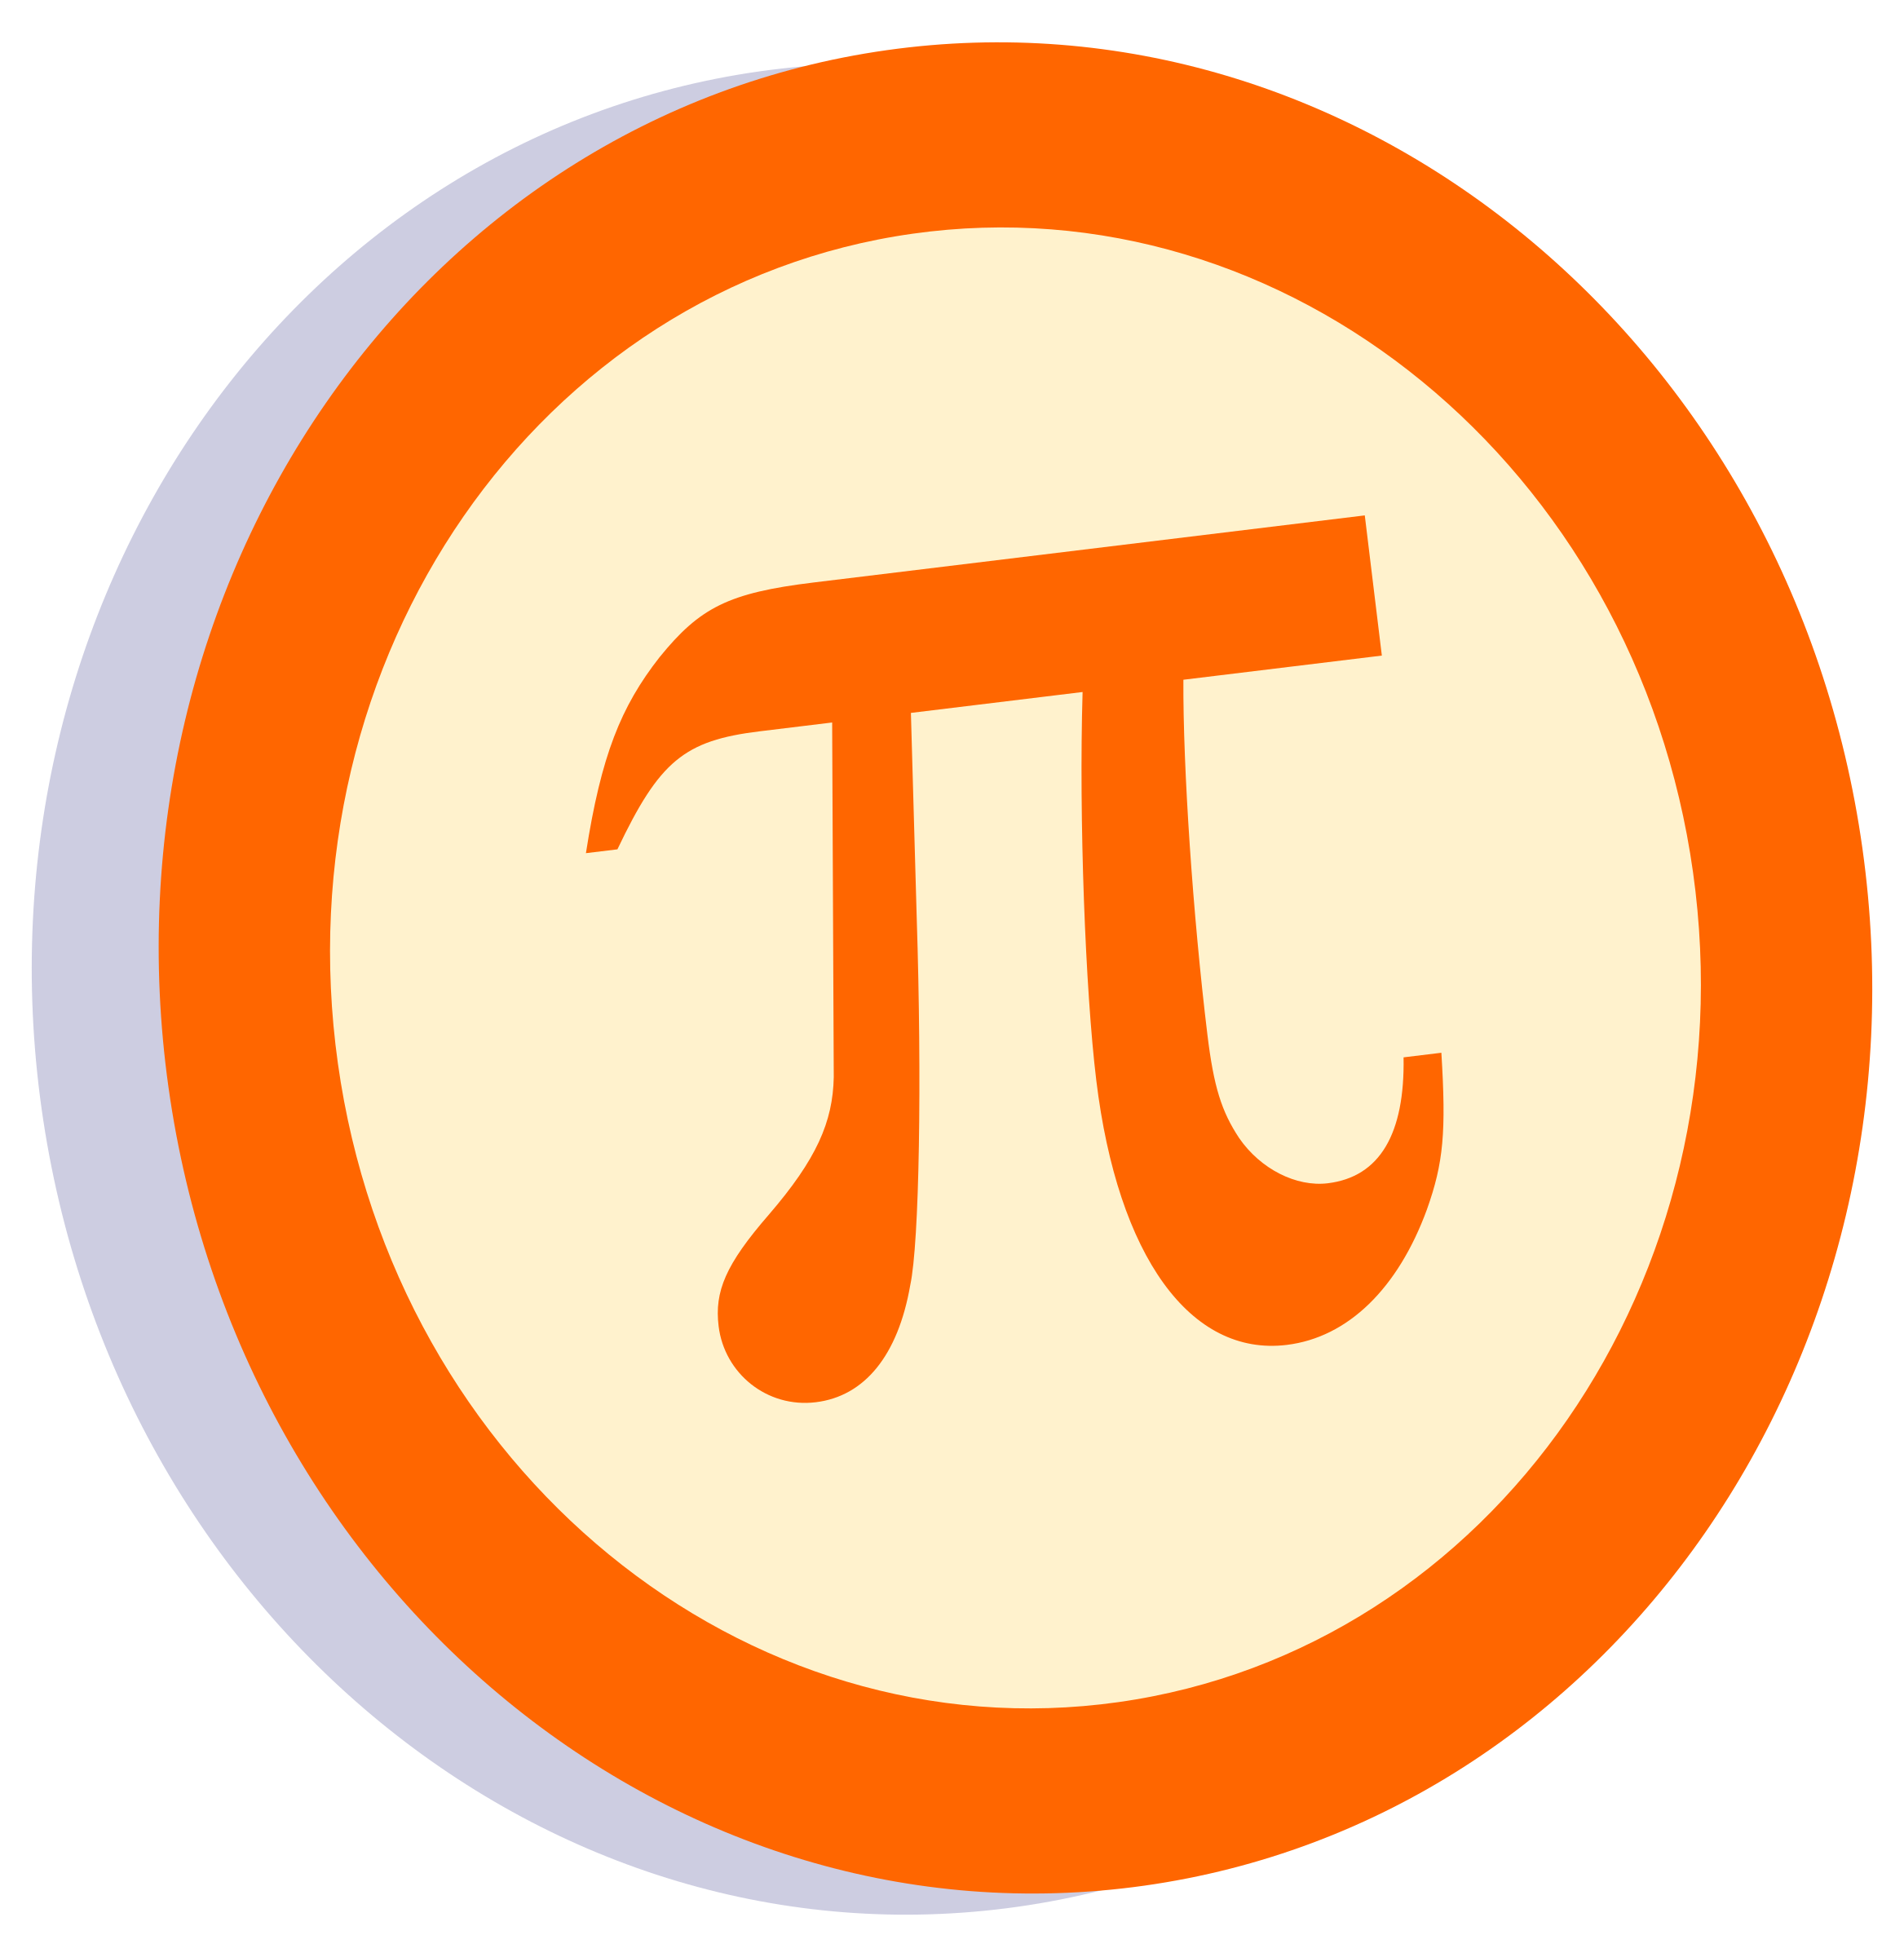 Pi Symbol in a Circle by GR8DAN